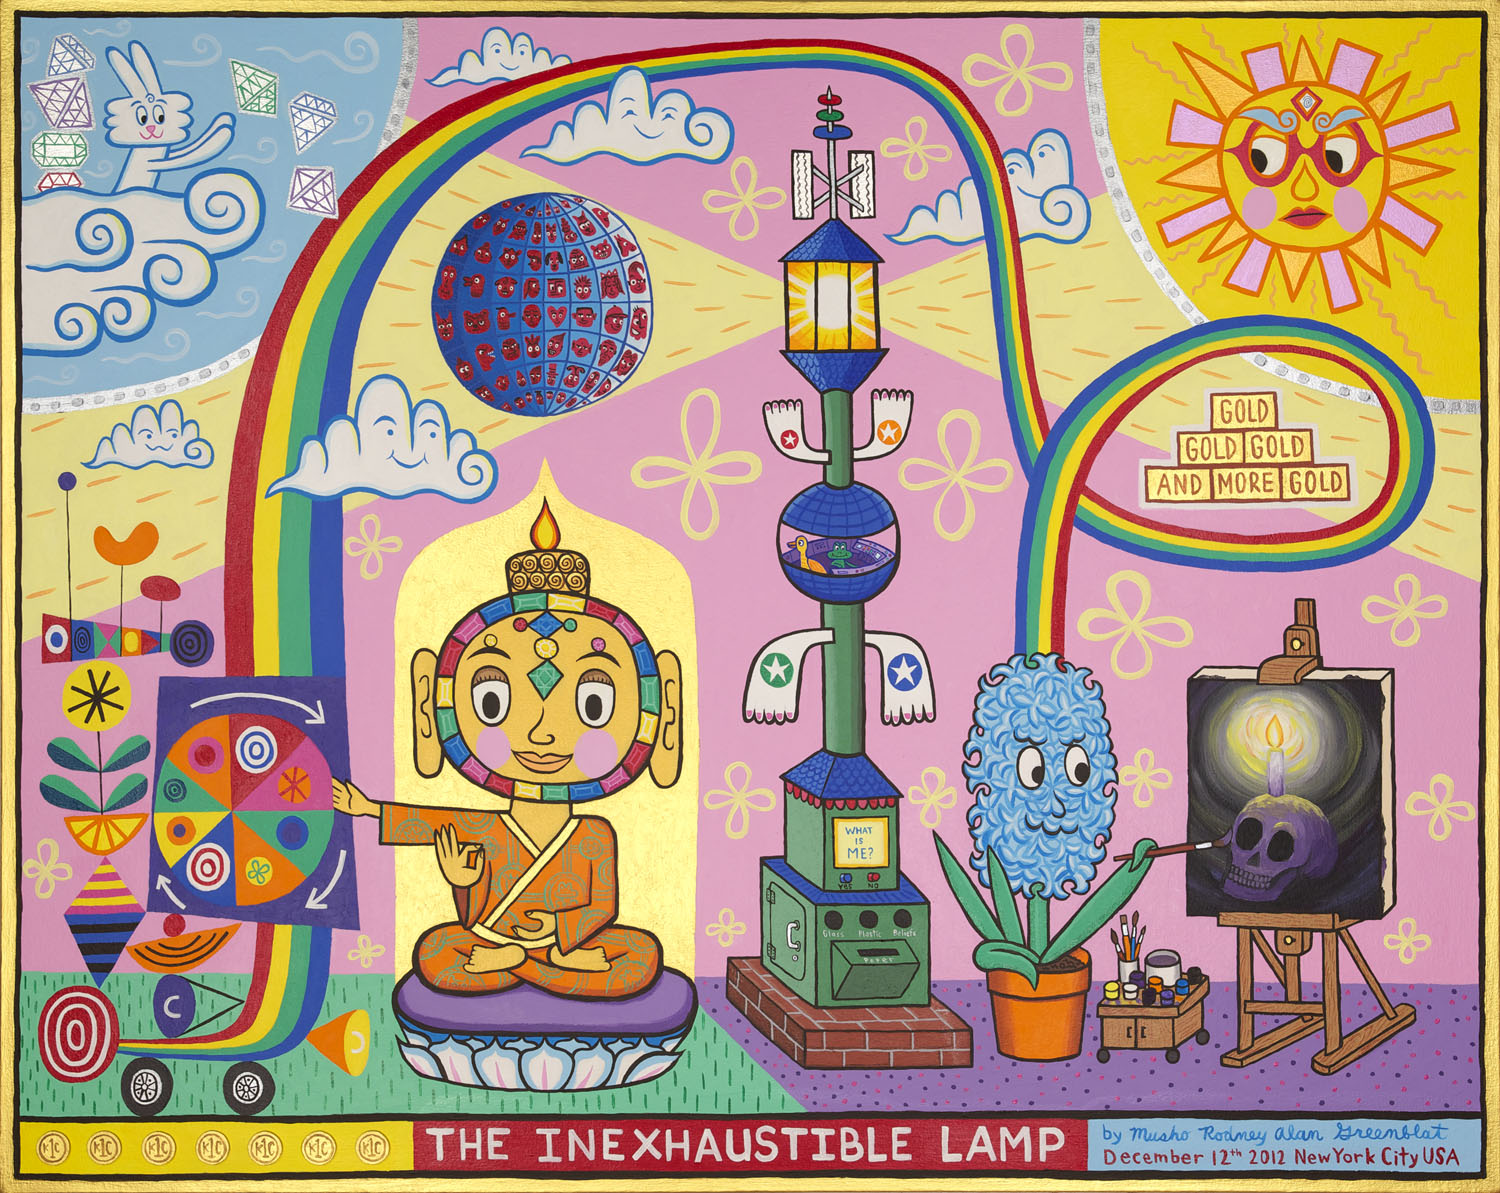 The Inexhaustible Lamp